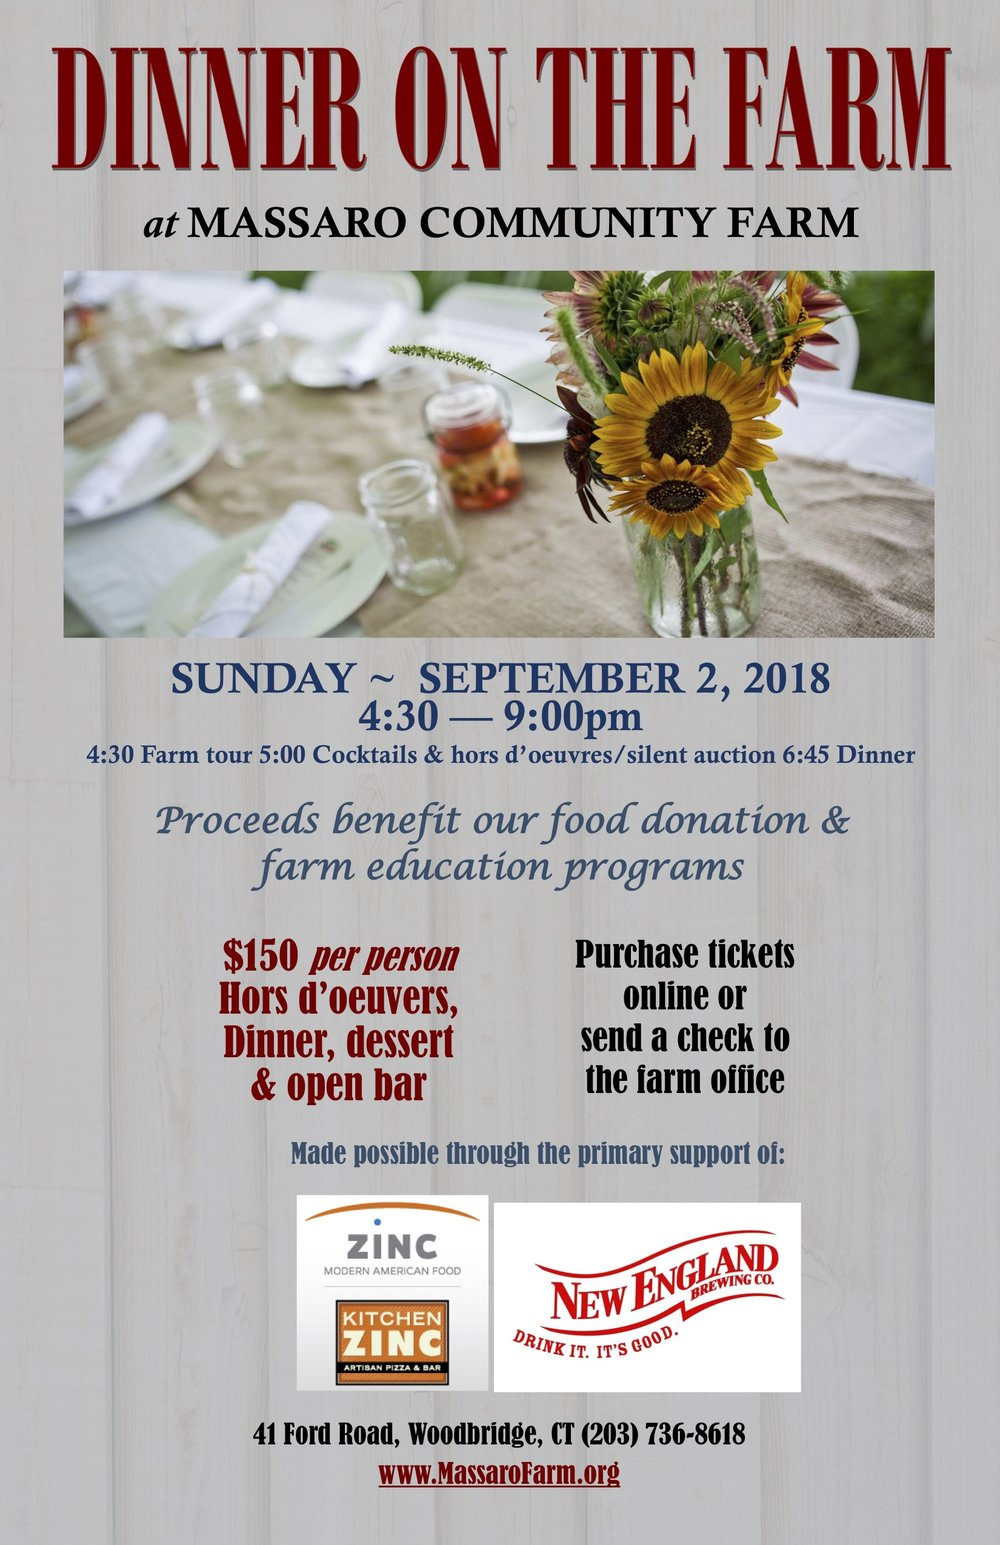 Dinner on the Farm Poster 6.18.2018.jpg